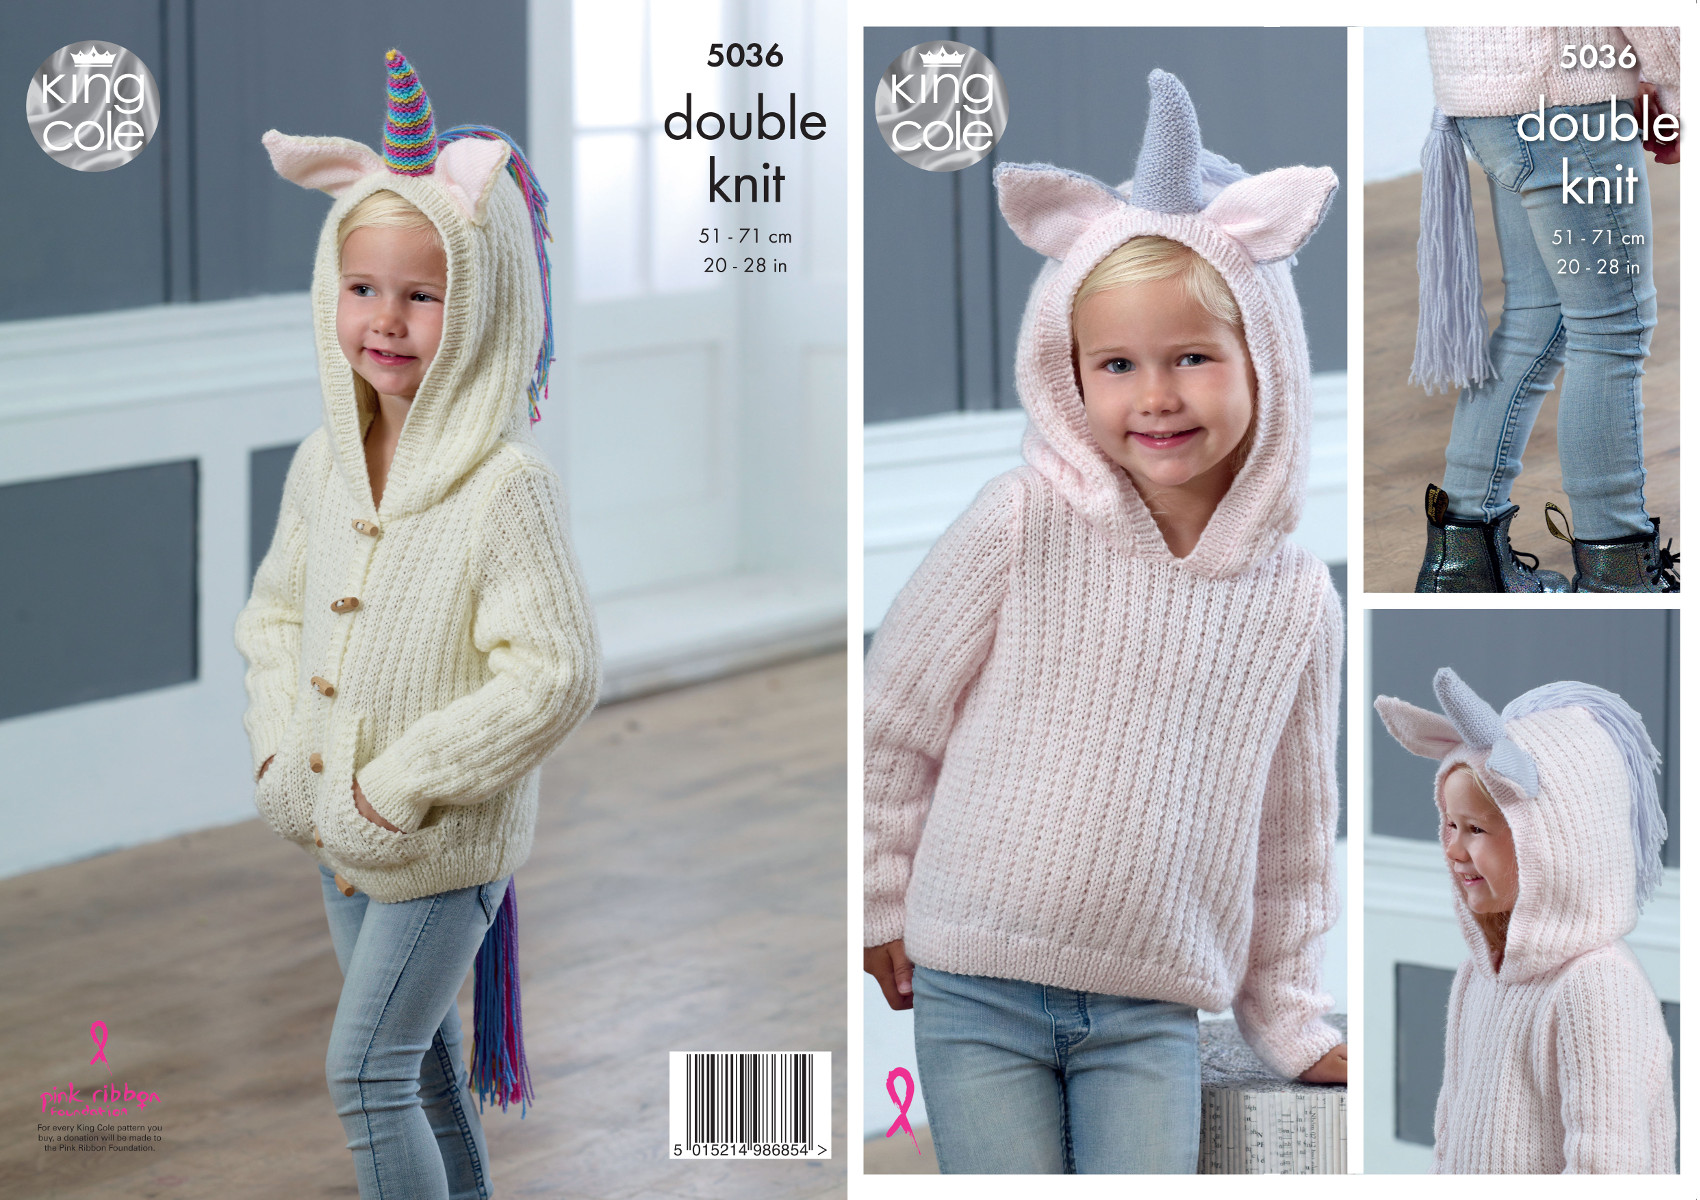 269213cc3 Details about King Cole Girls Double Knitting Pattern Hooded Unicorn Sweater    Cardigan 5036